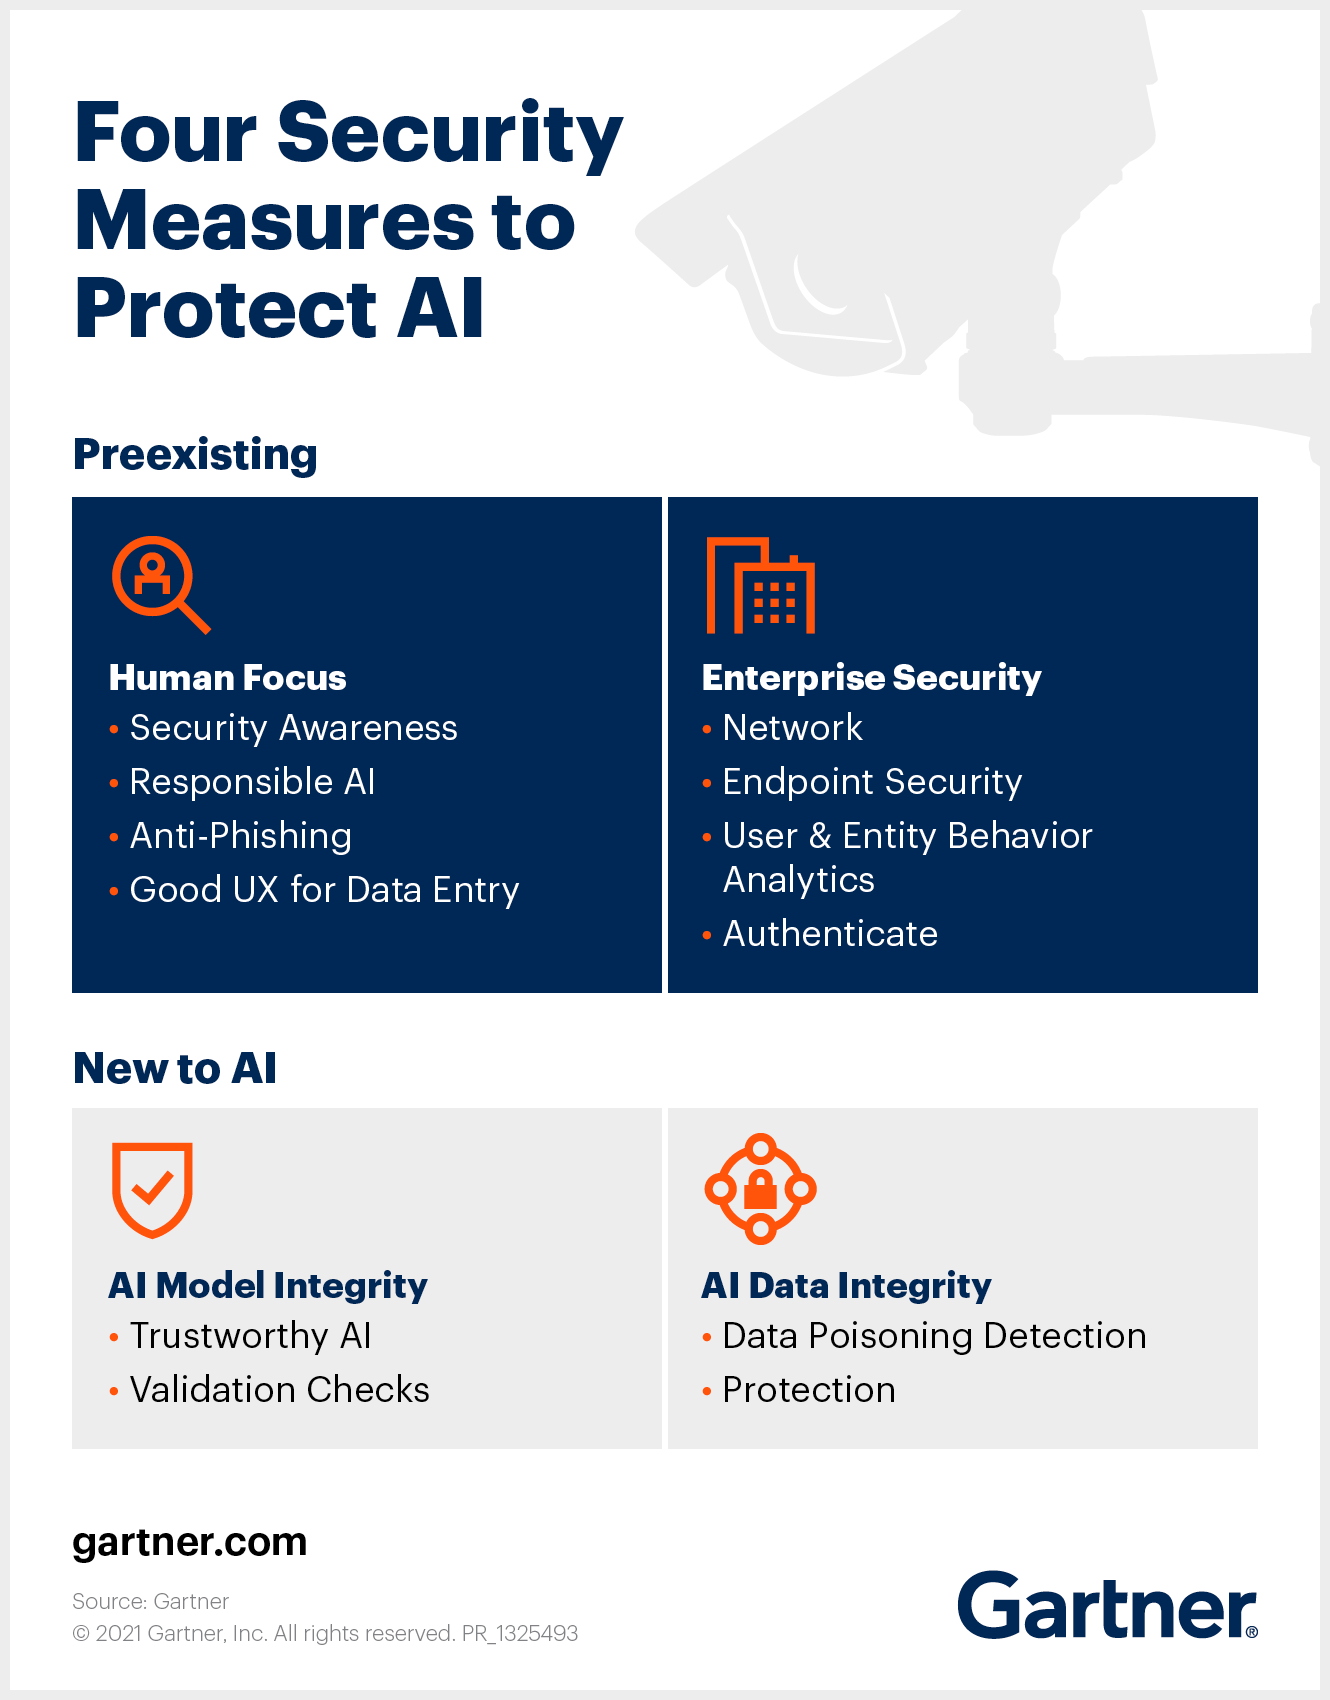 Measures to Protect and Secure AI to make it trustworthy